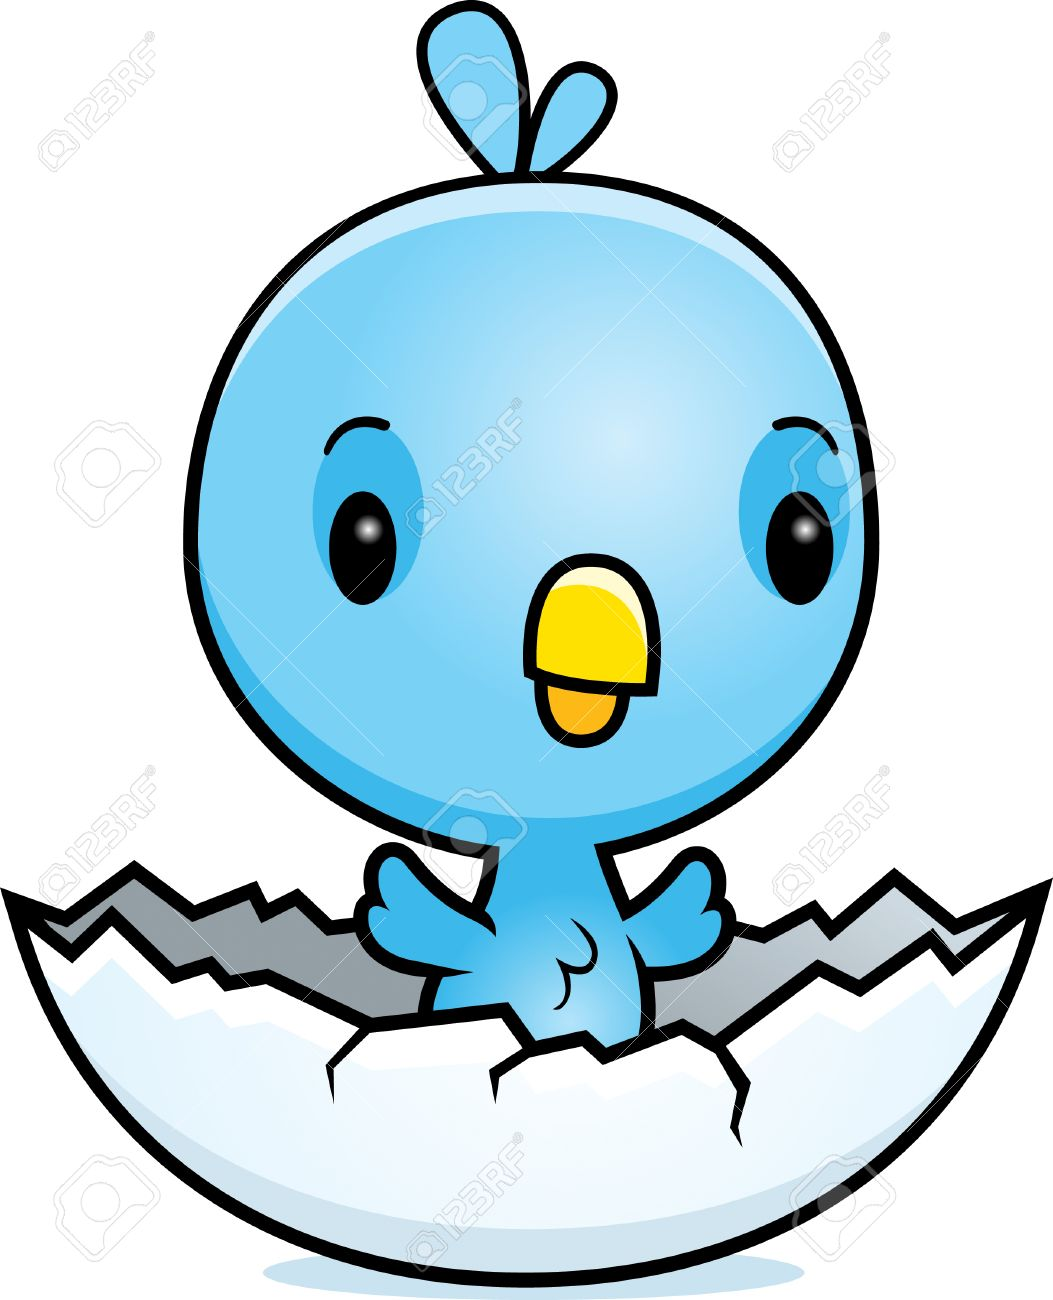 A cartoon illustration of a baby blue bird hatching from an egg..